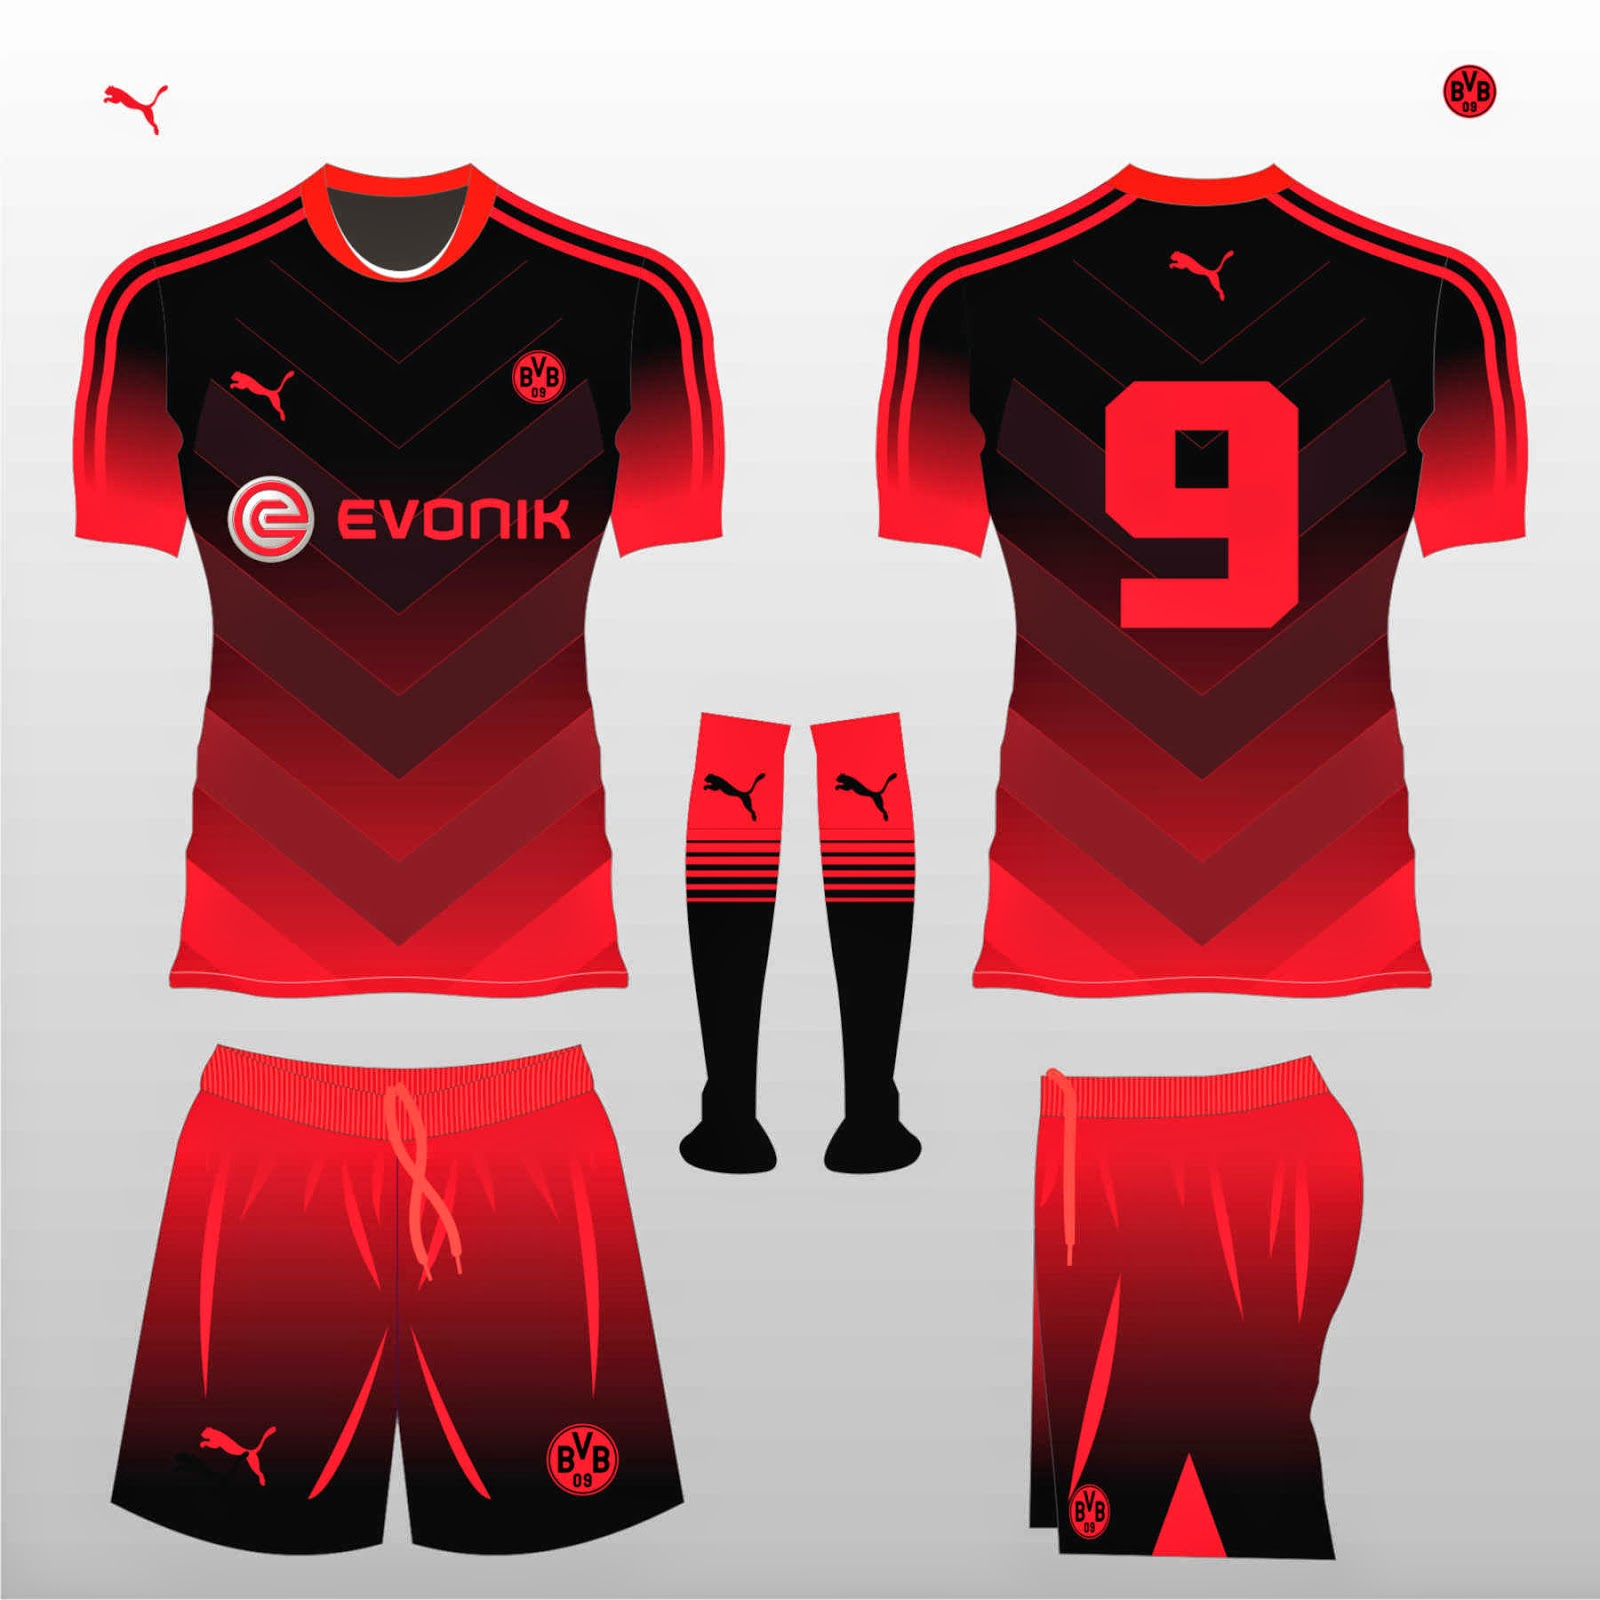 super popular 23e50 5d05d Football Kit Design Master: Evonik Football kit design